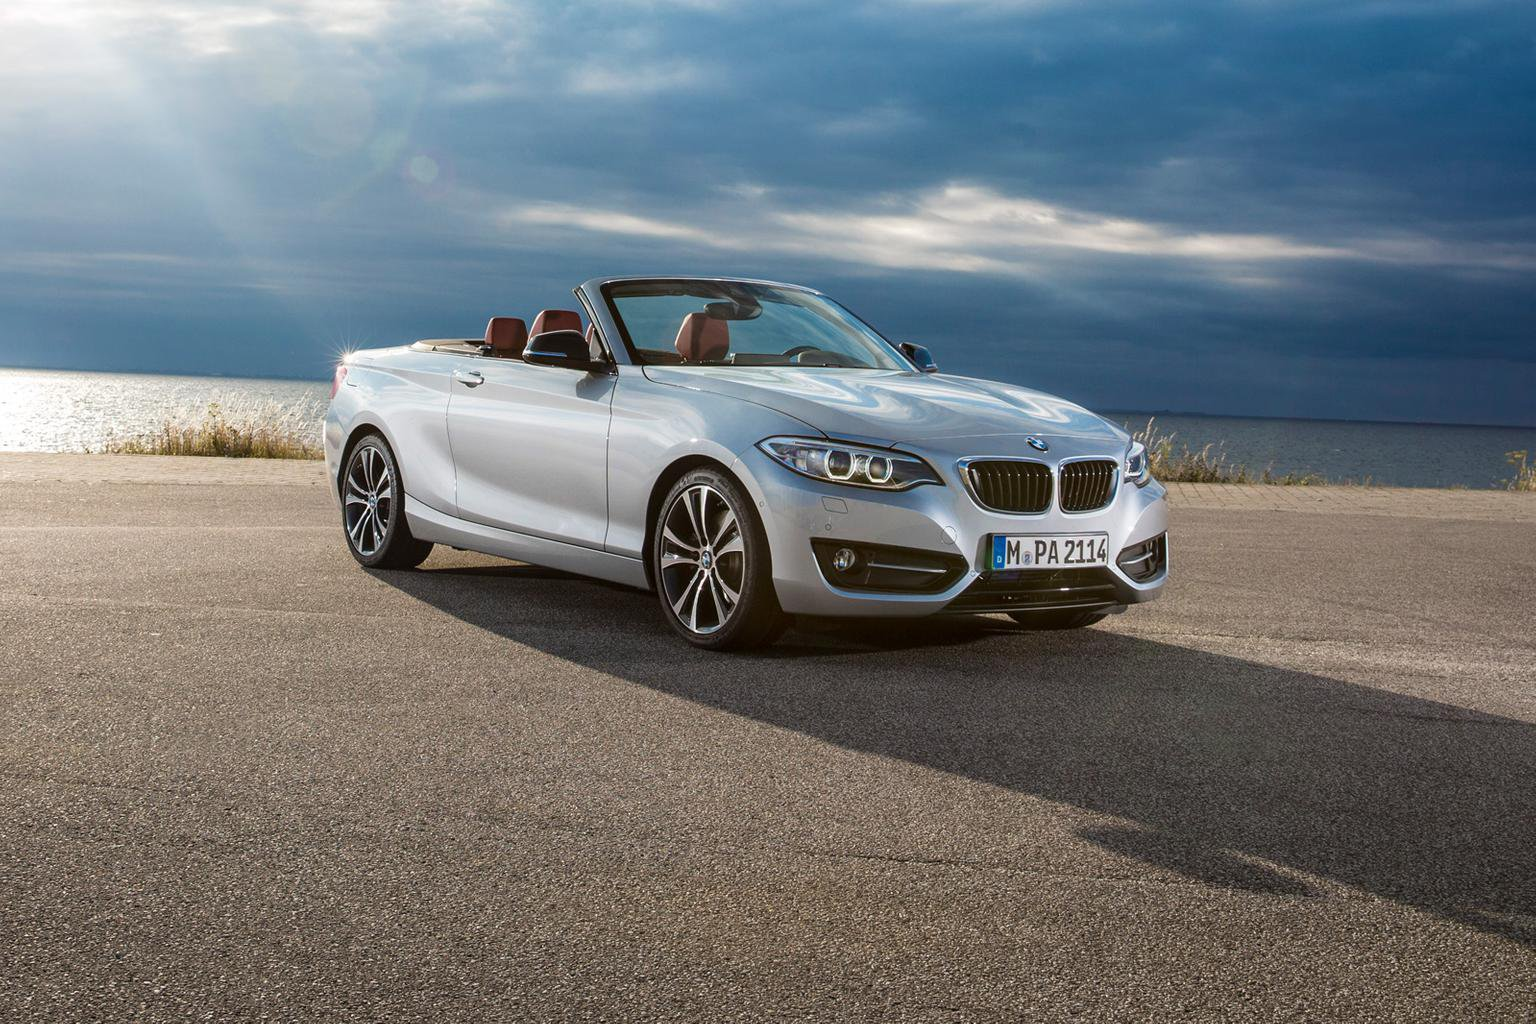 2015 BMW 2 Series Convertible - engines, specs and on-sale date